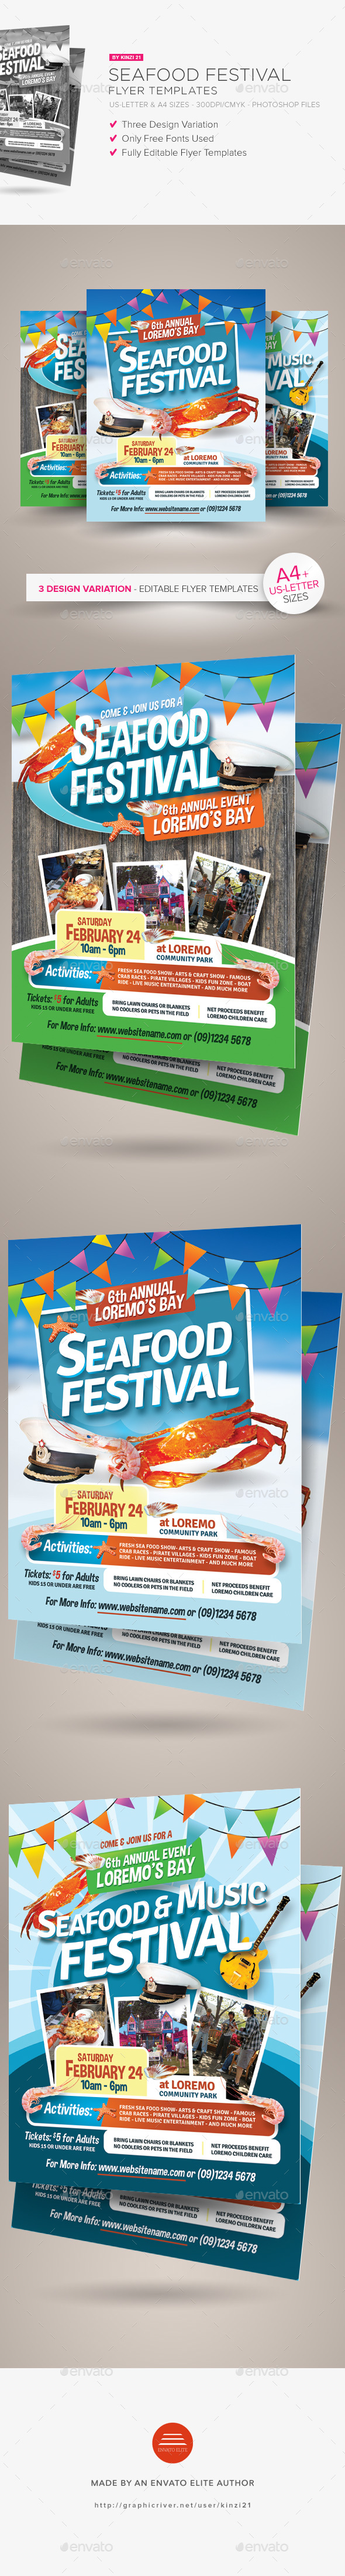 Seafood Festival Flyer Templates - Miscellaneous Events